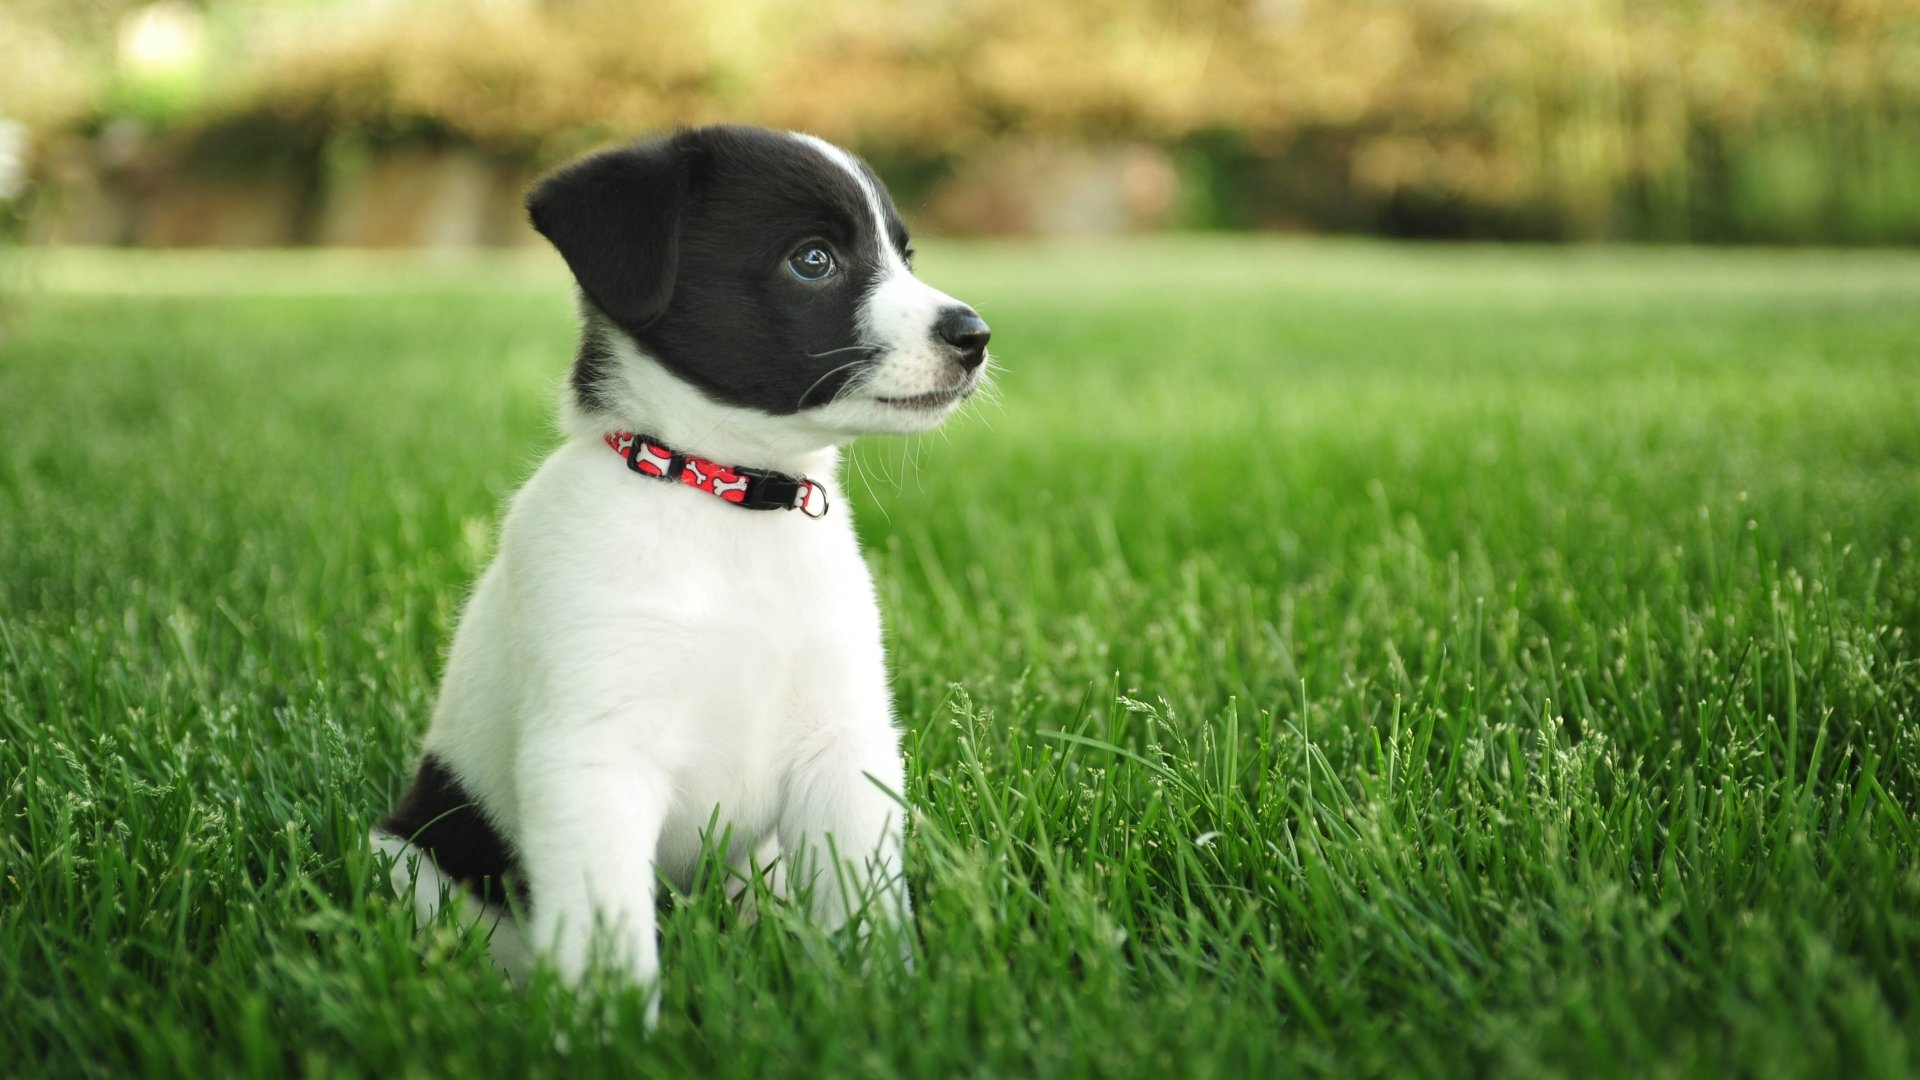 596 Puppy Hd Wallpapers Background Images Wallpaper Abyss